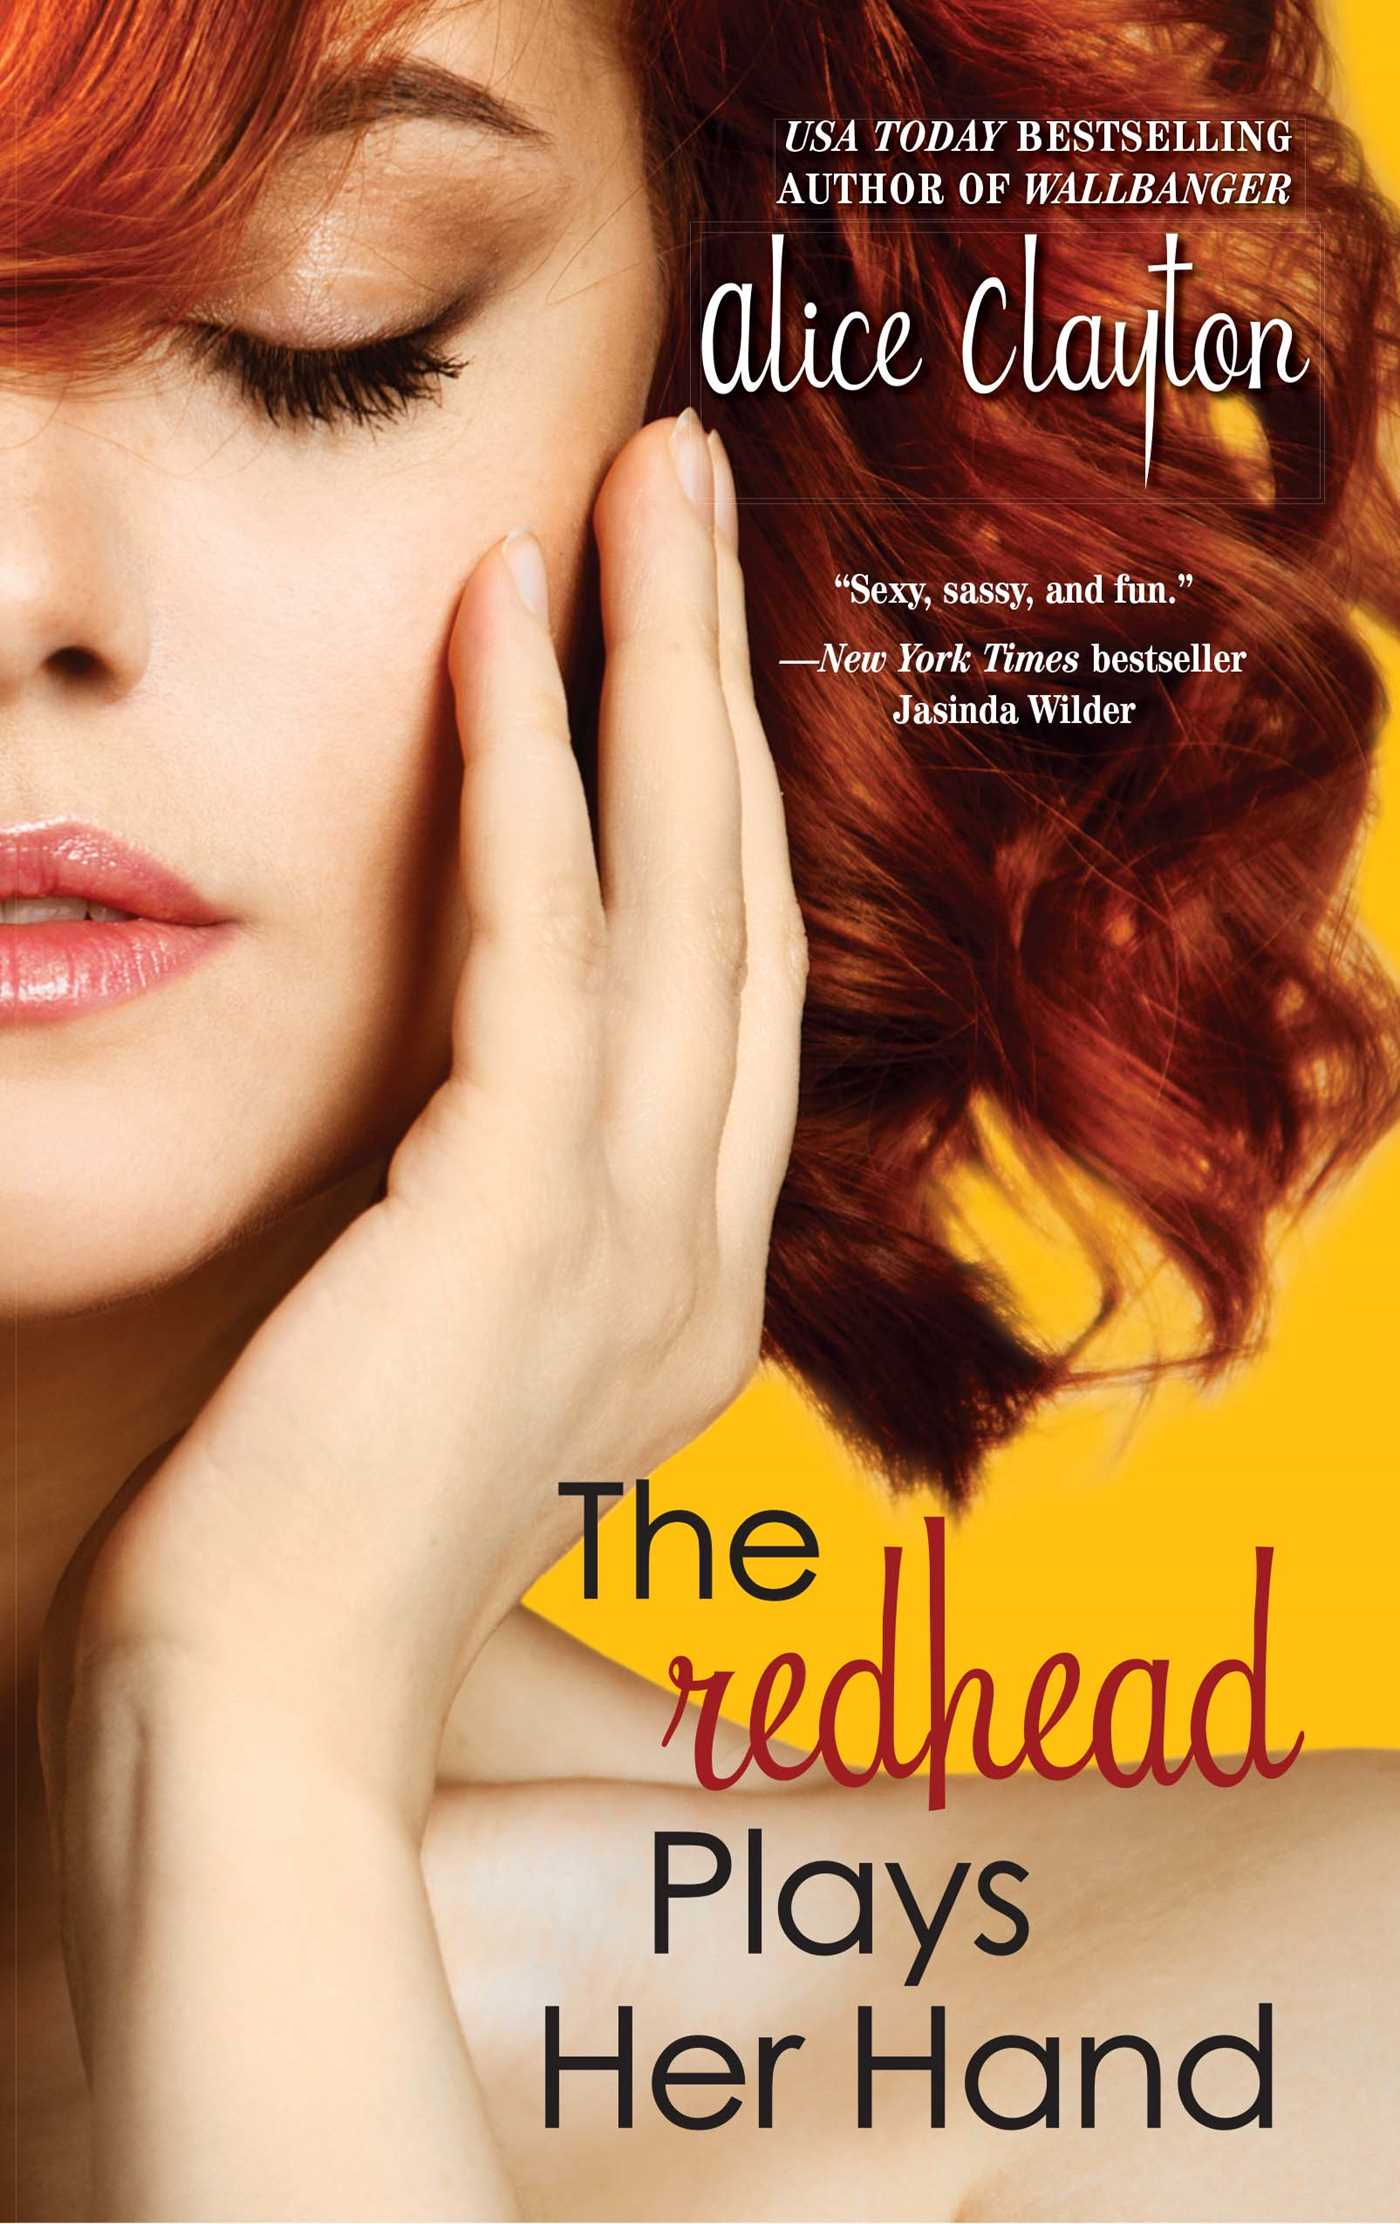 The redhead plays her hand 9781476741314 hr